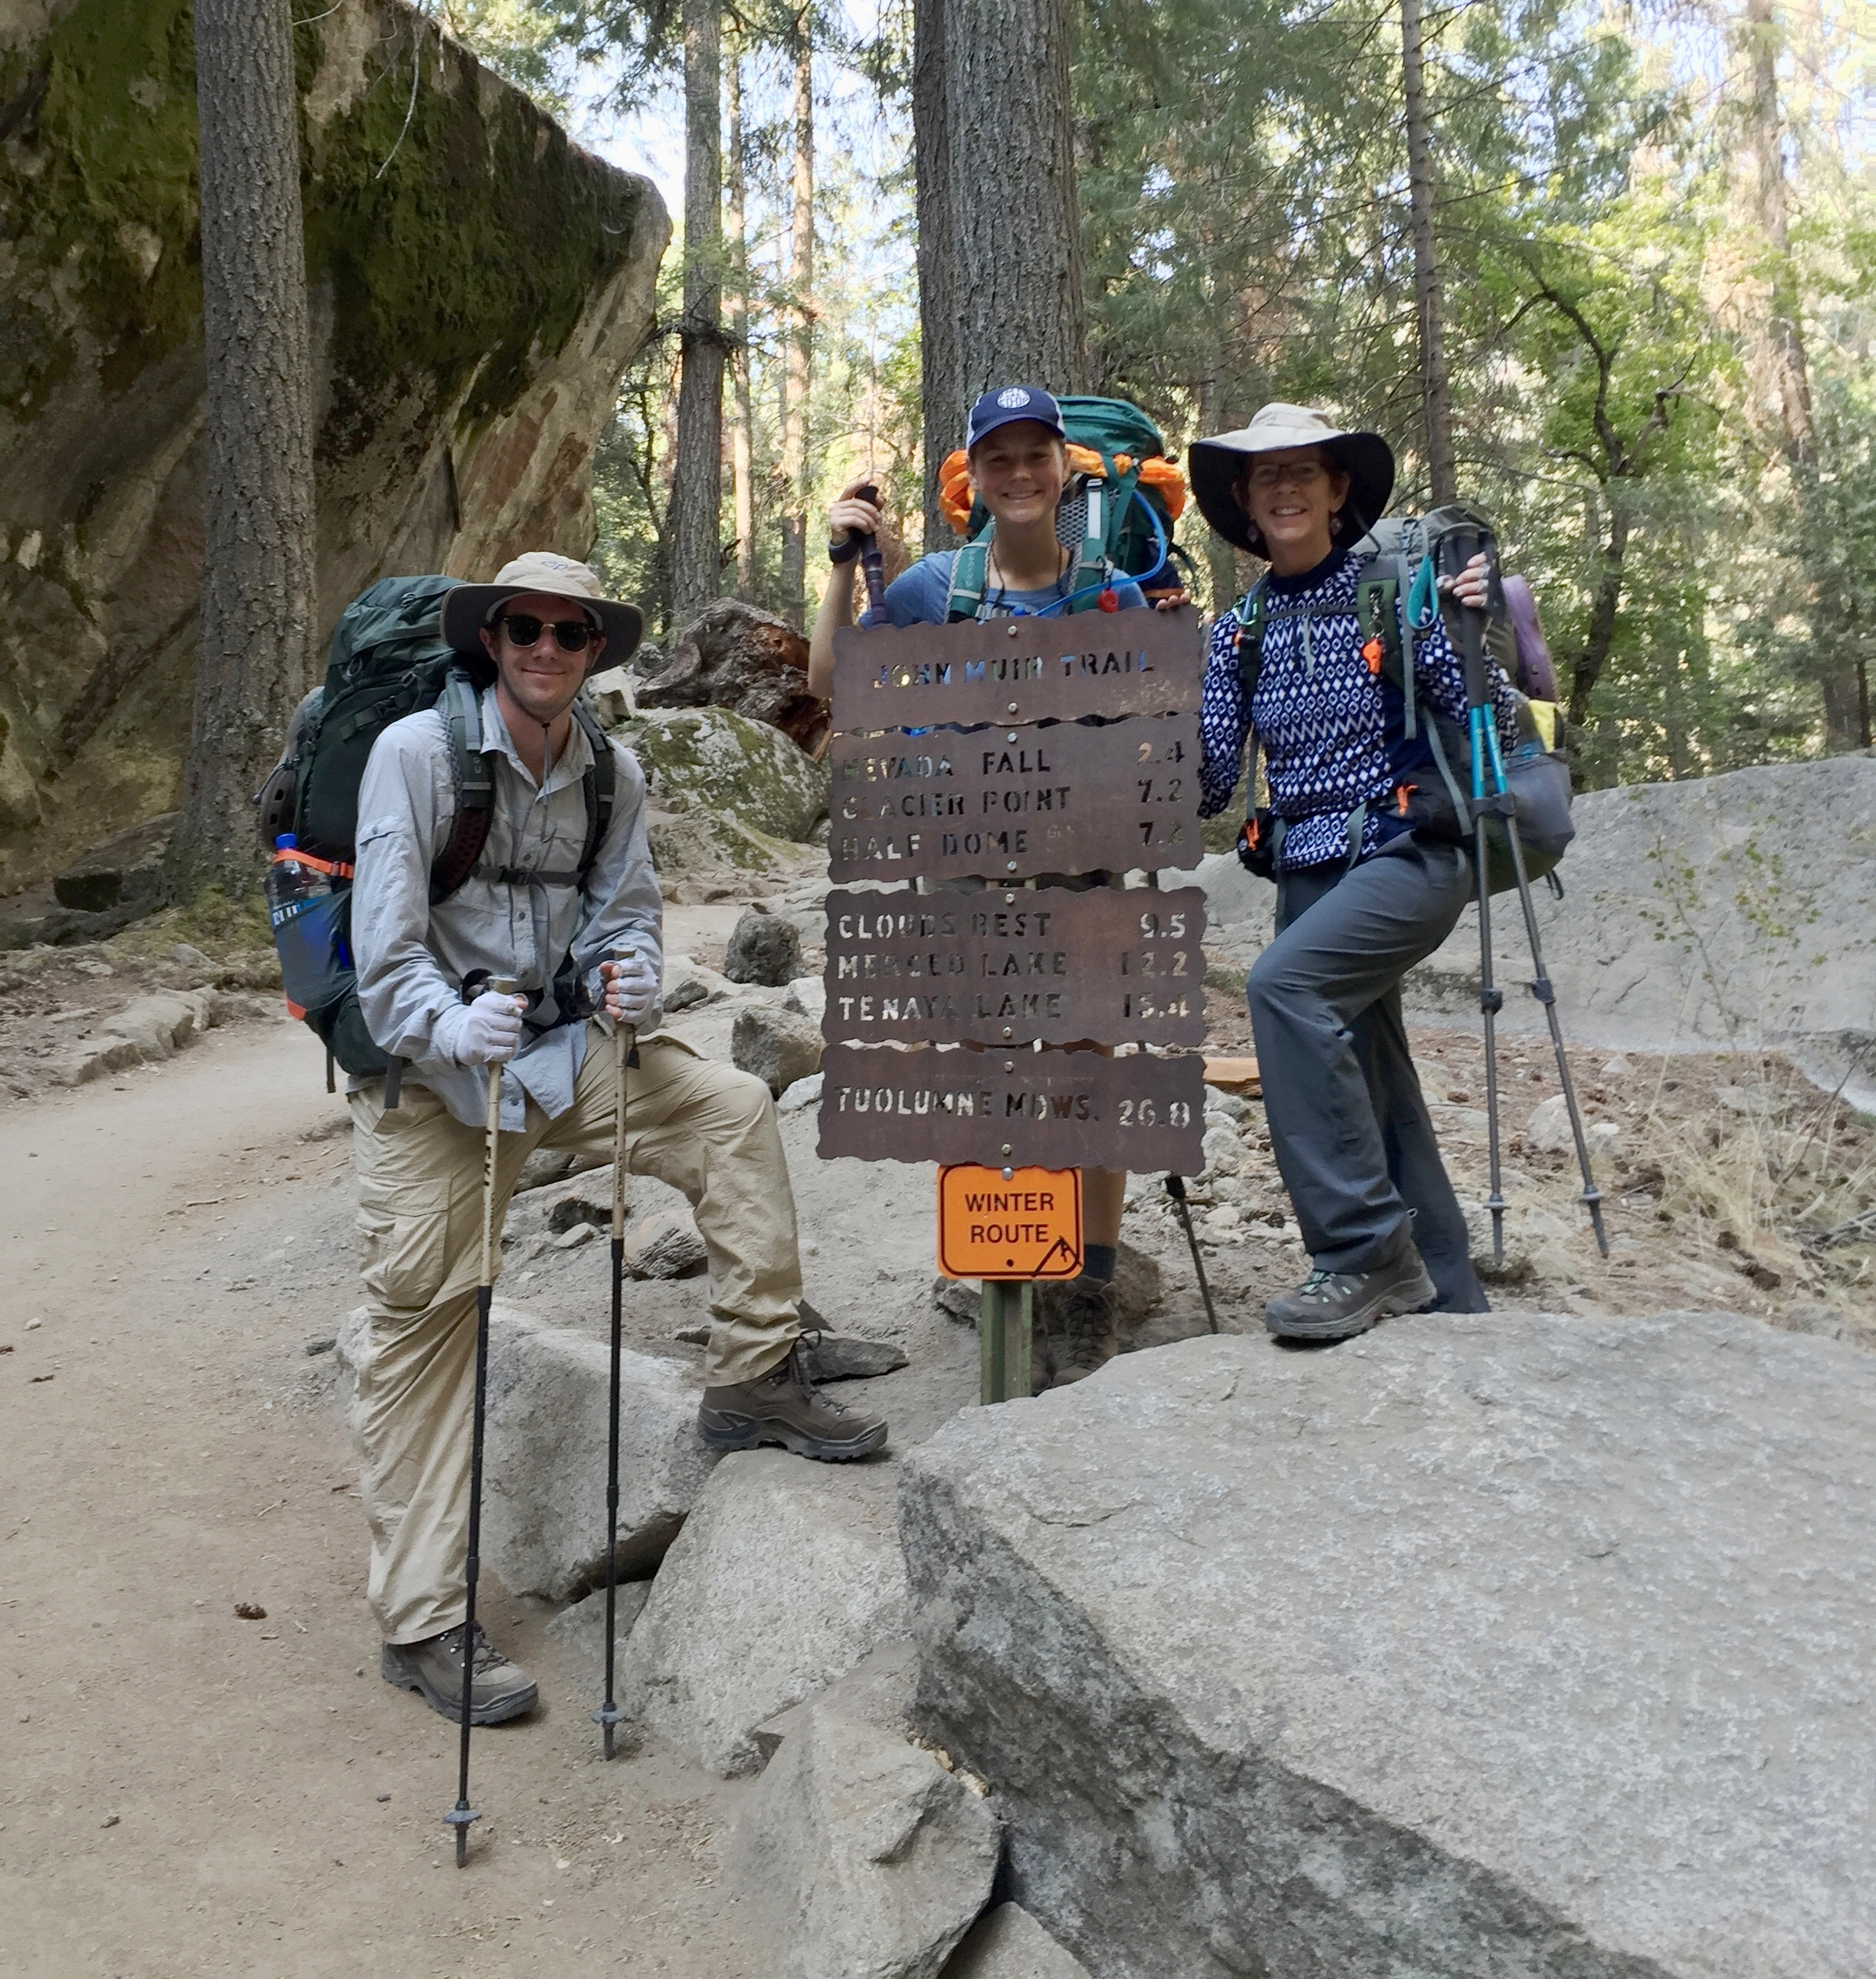 Day 1 on the Johh Muir Trail.